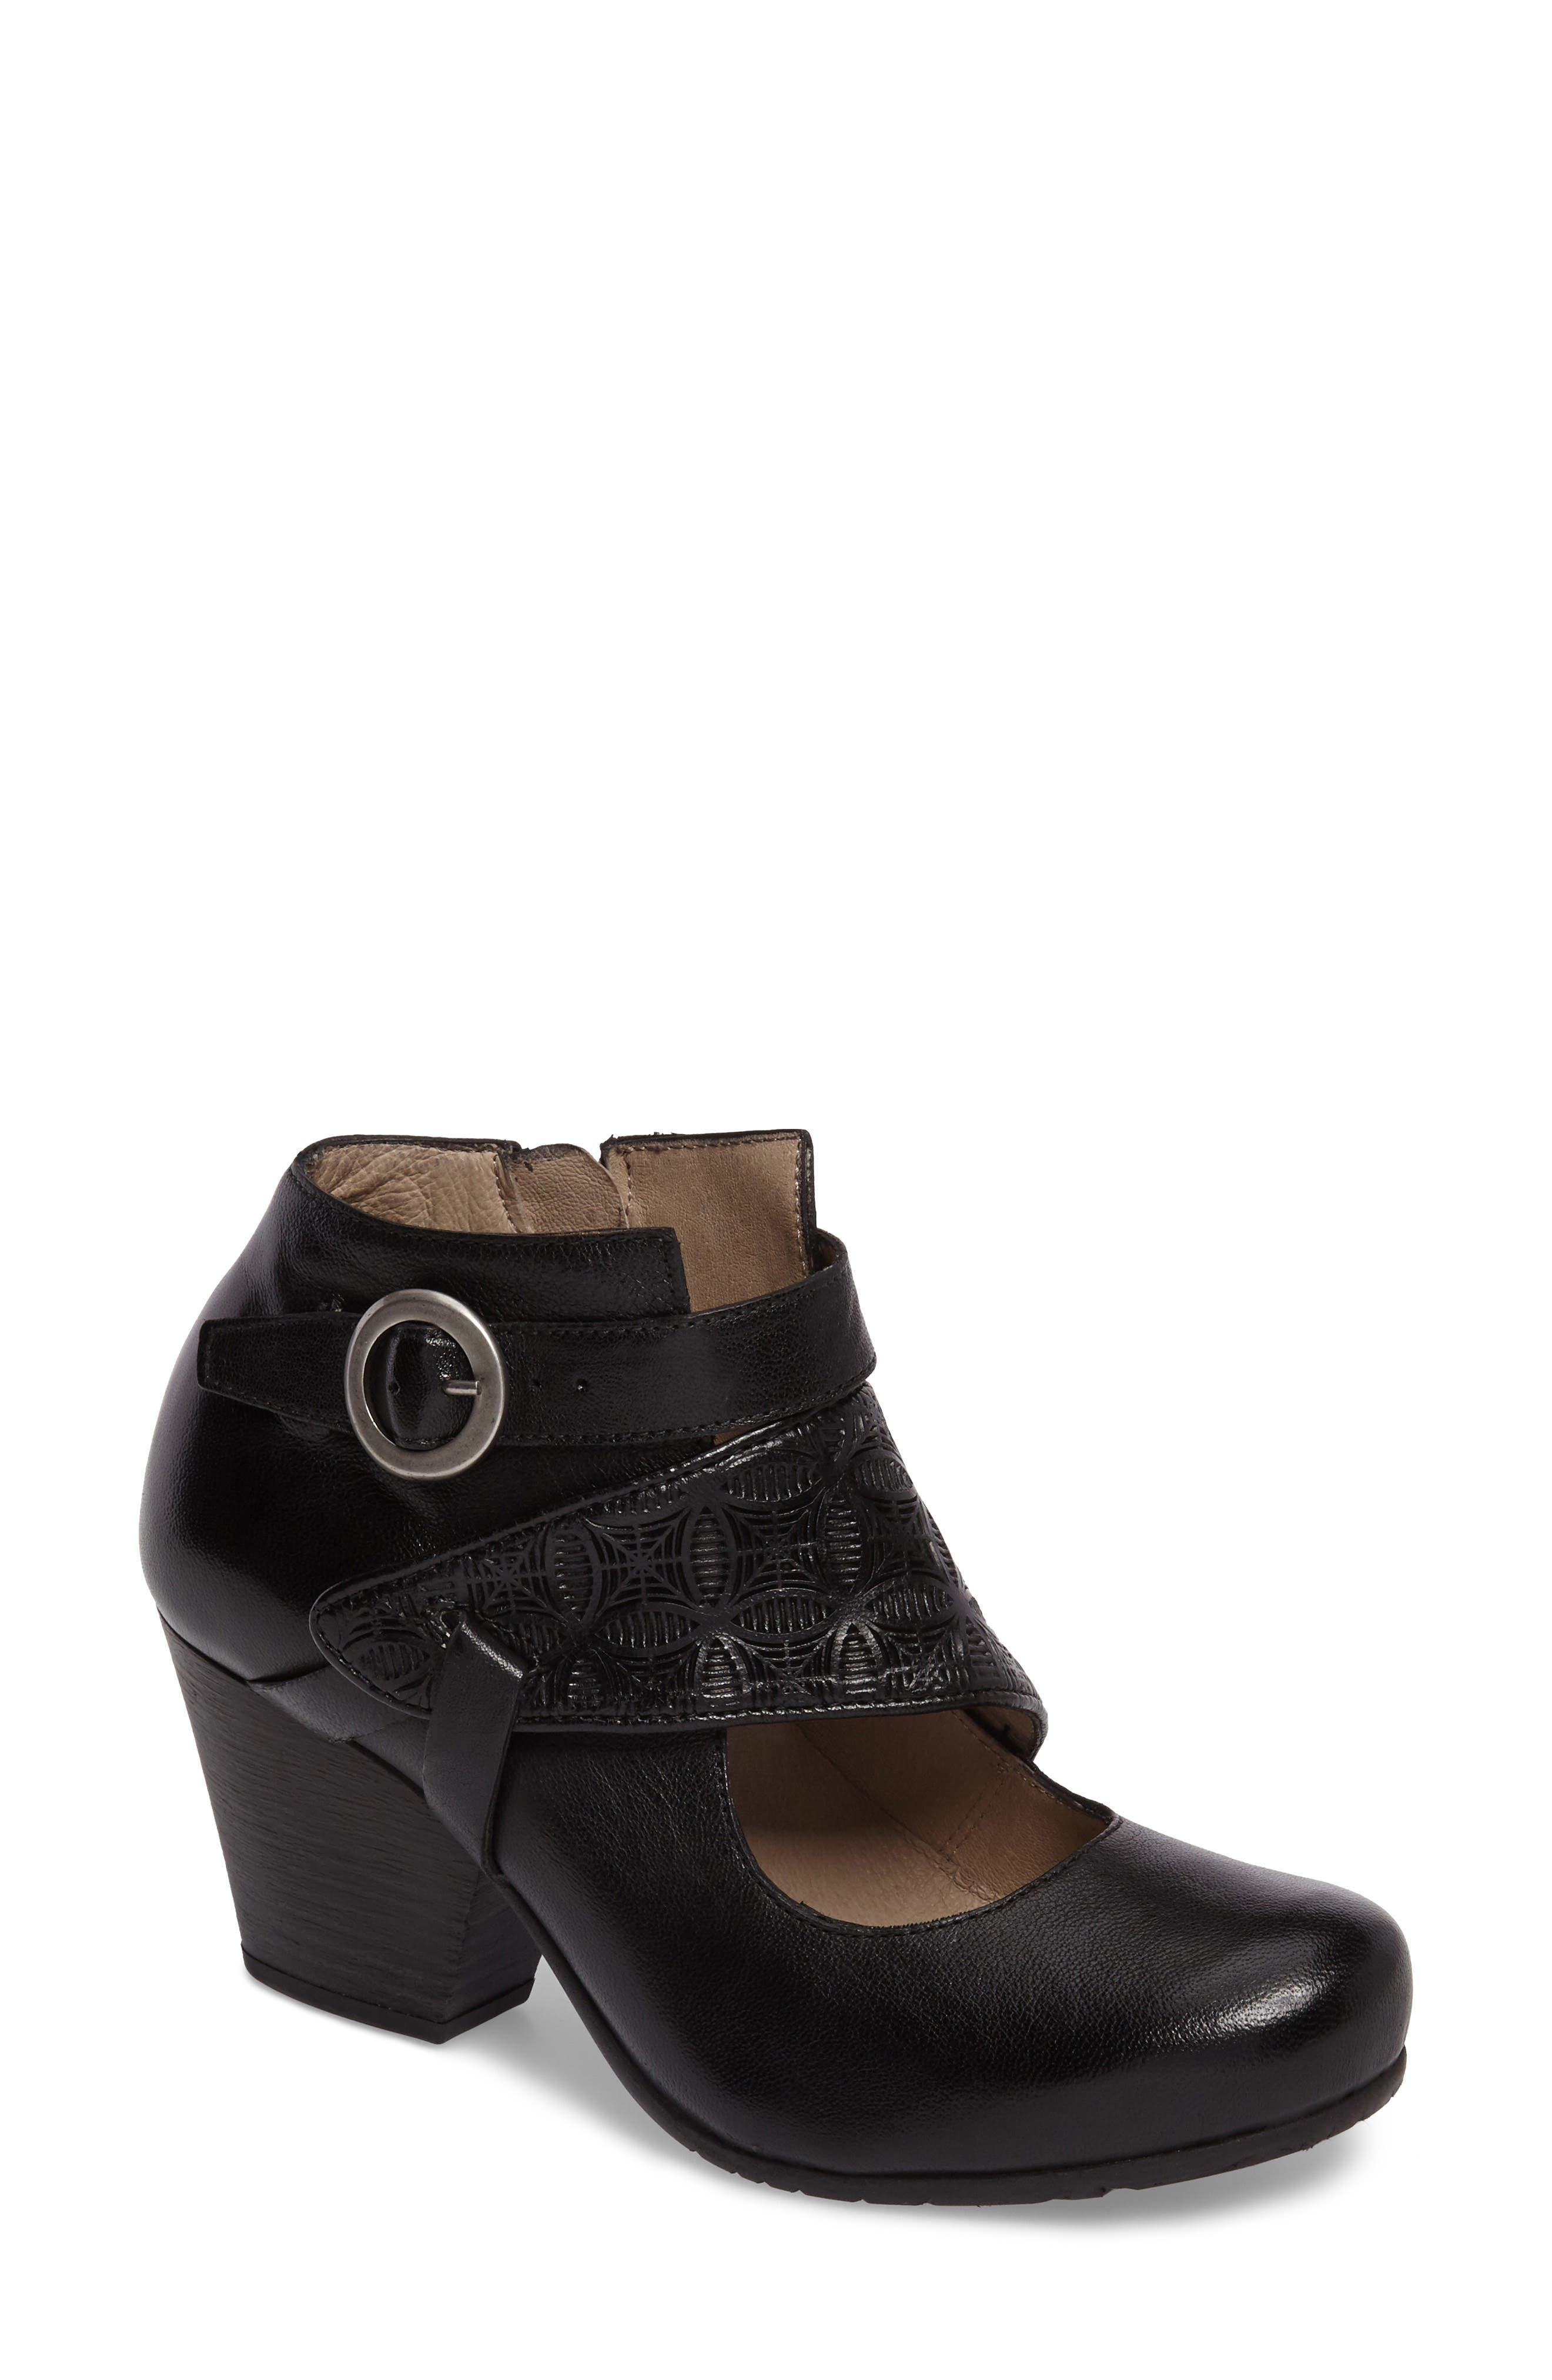 Dale Embossed Mary Jane Bootie,                         Main,                         color, Black